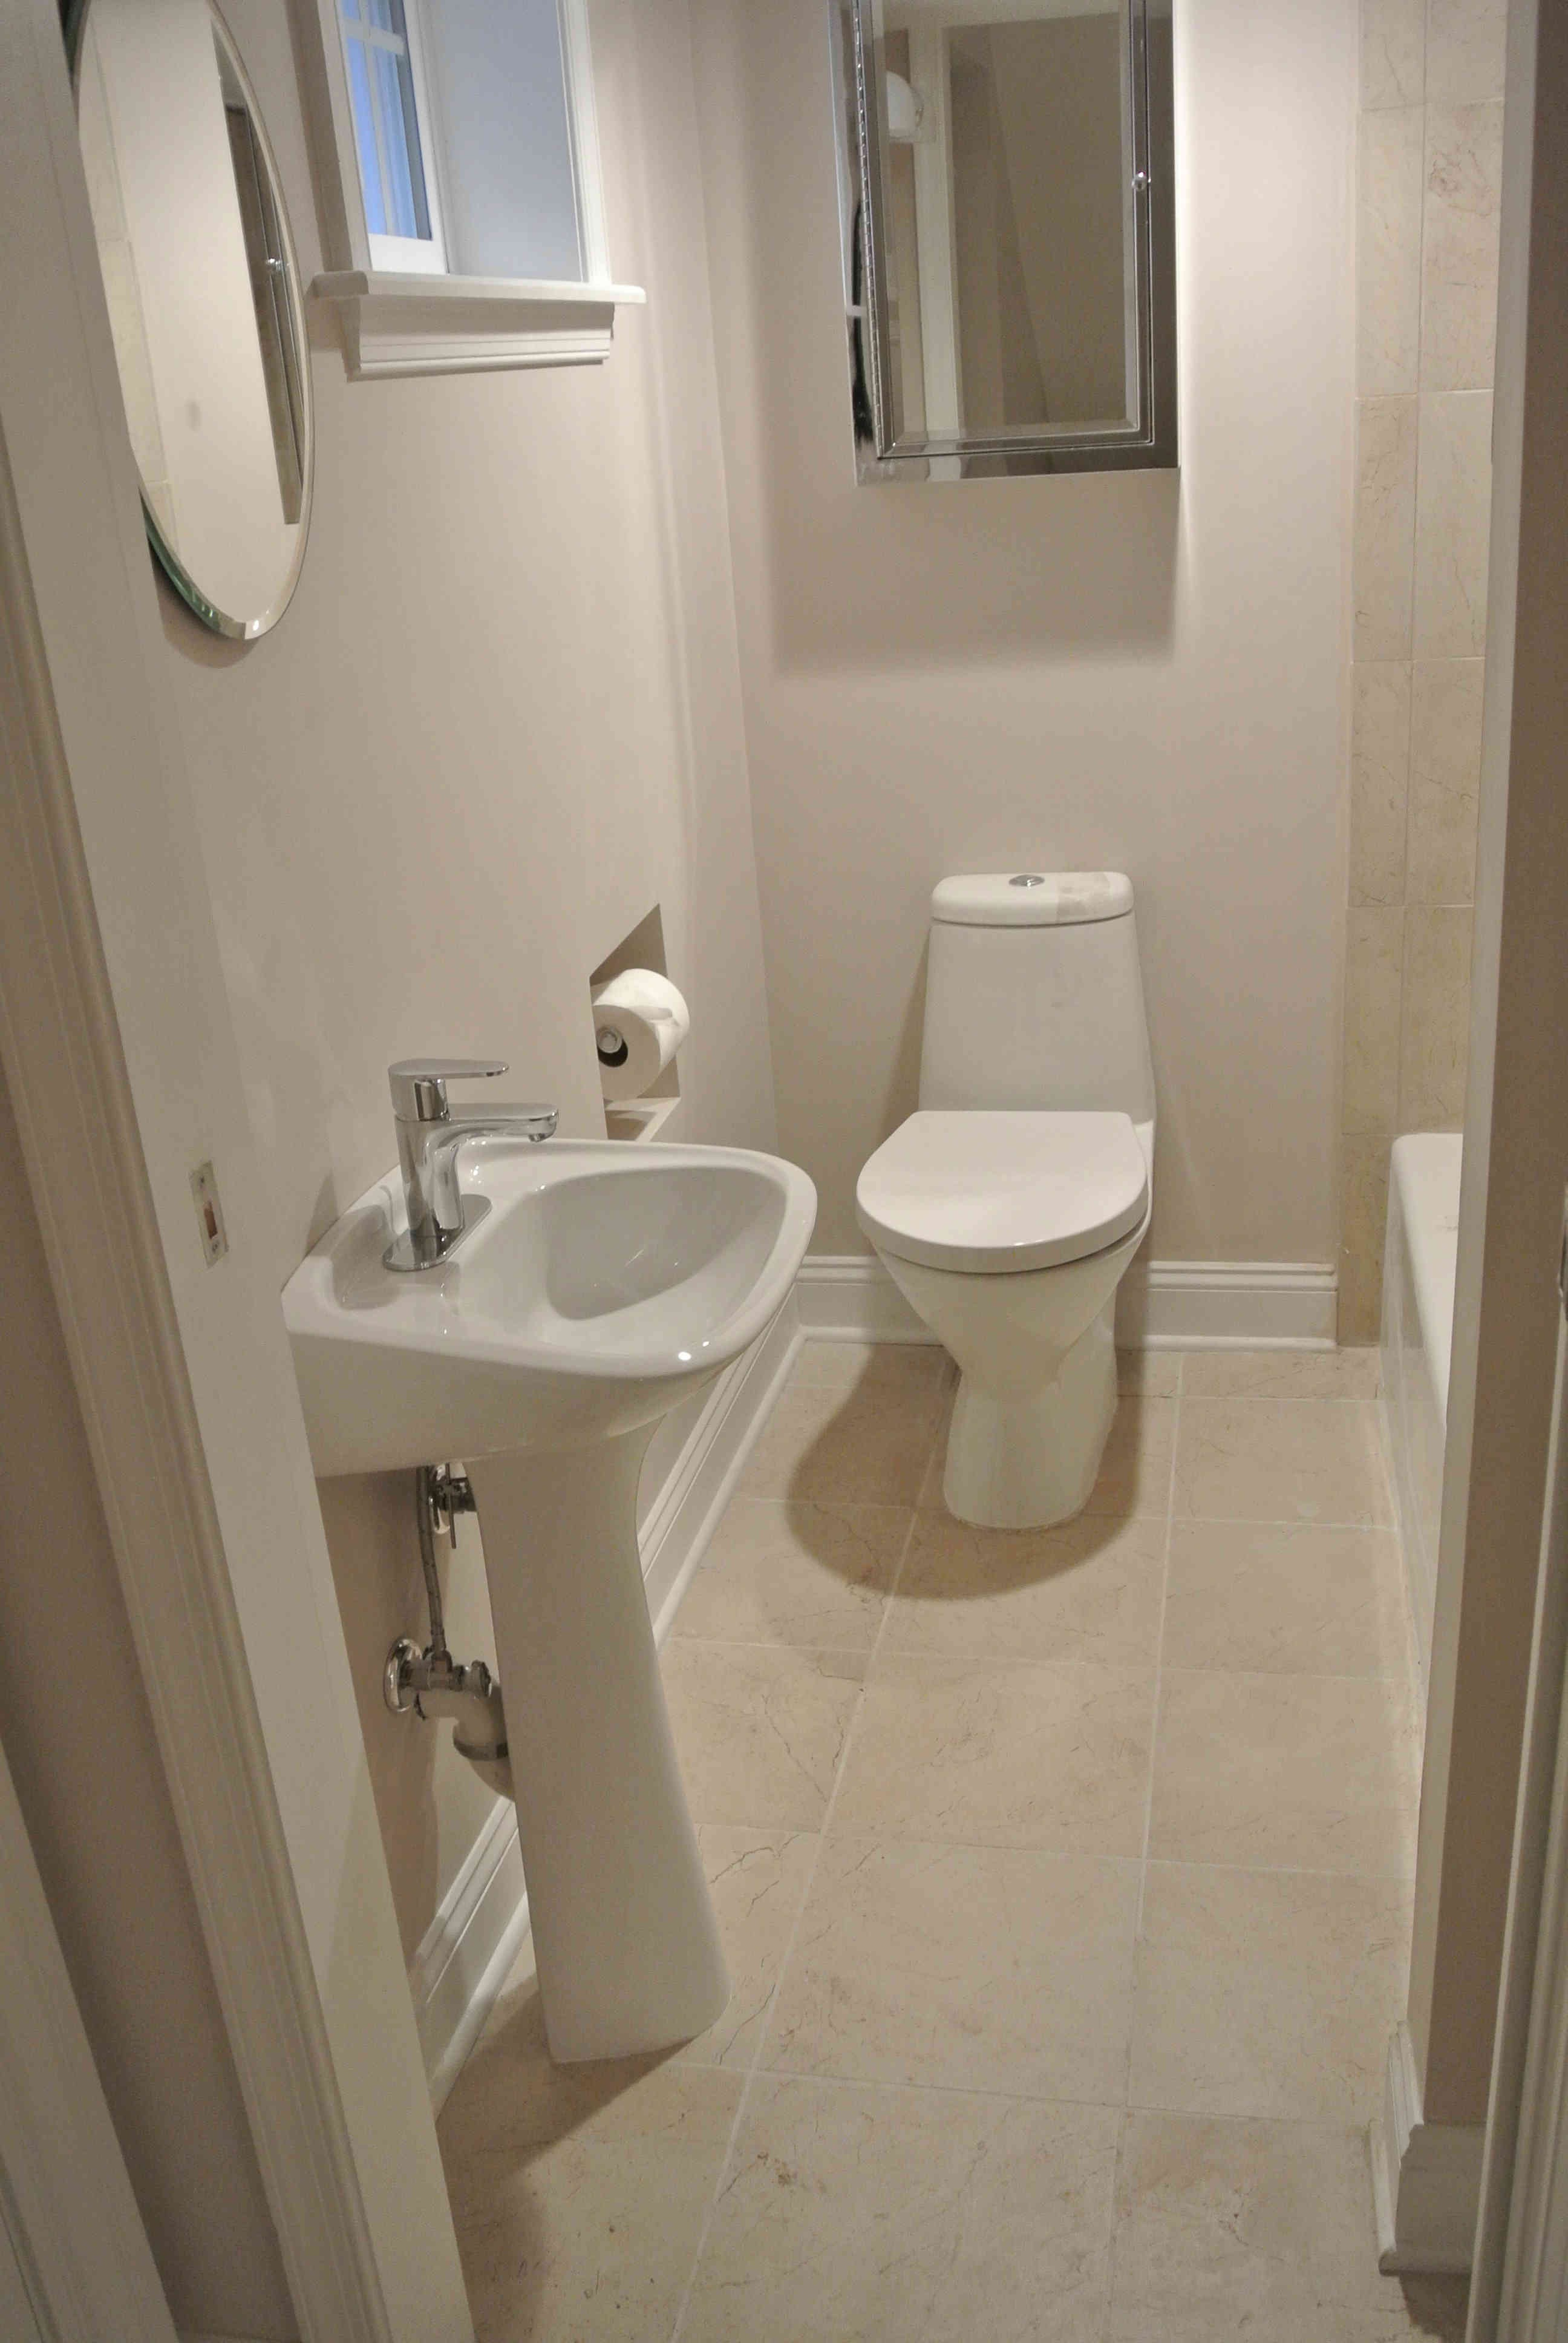 bathroom remodeling and residential painting bethesda and chevy chase md - Bathroom Remodeling Bethesda Md